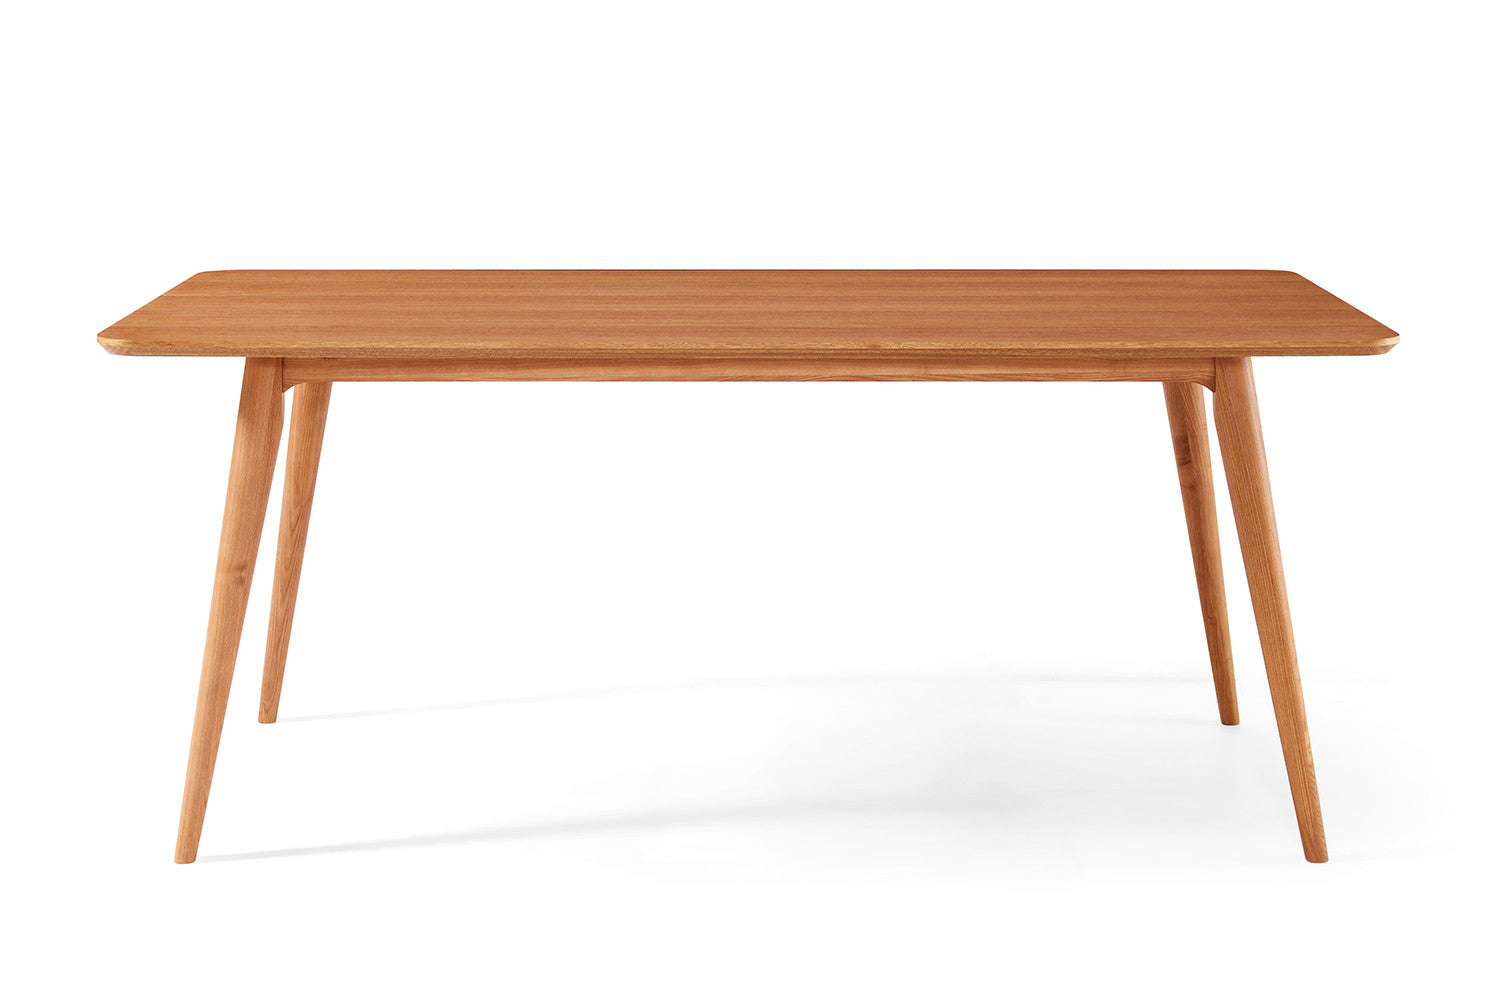 Table de salle manger design en bois julia dewarens for Table a manger bois